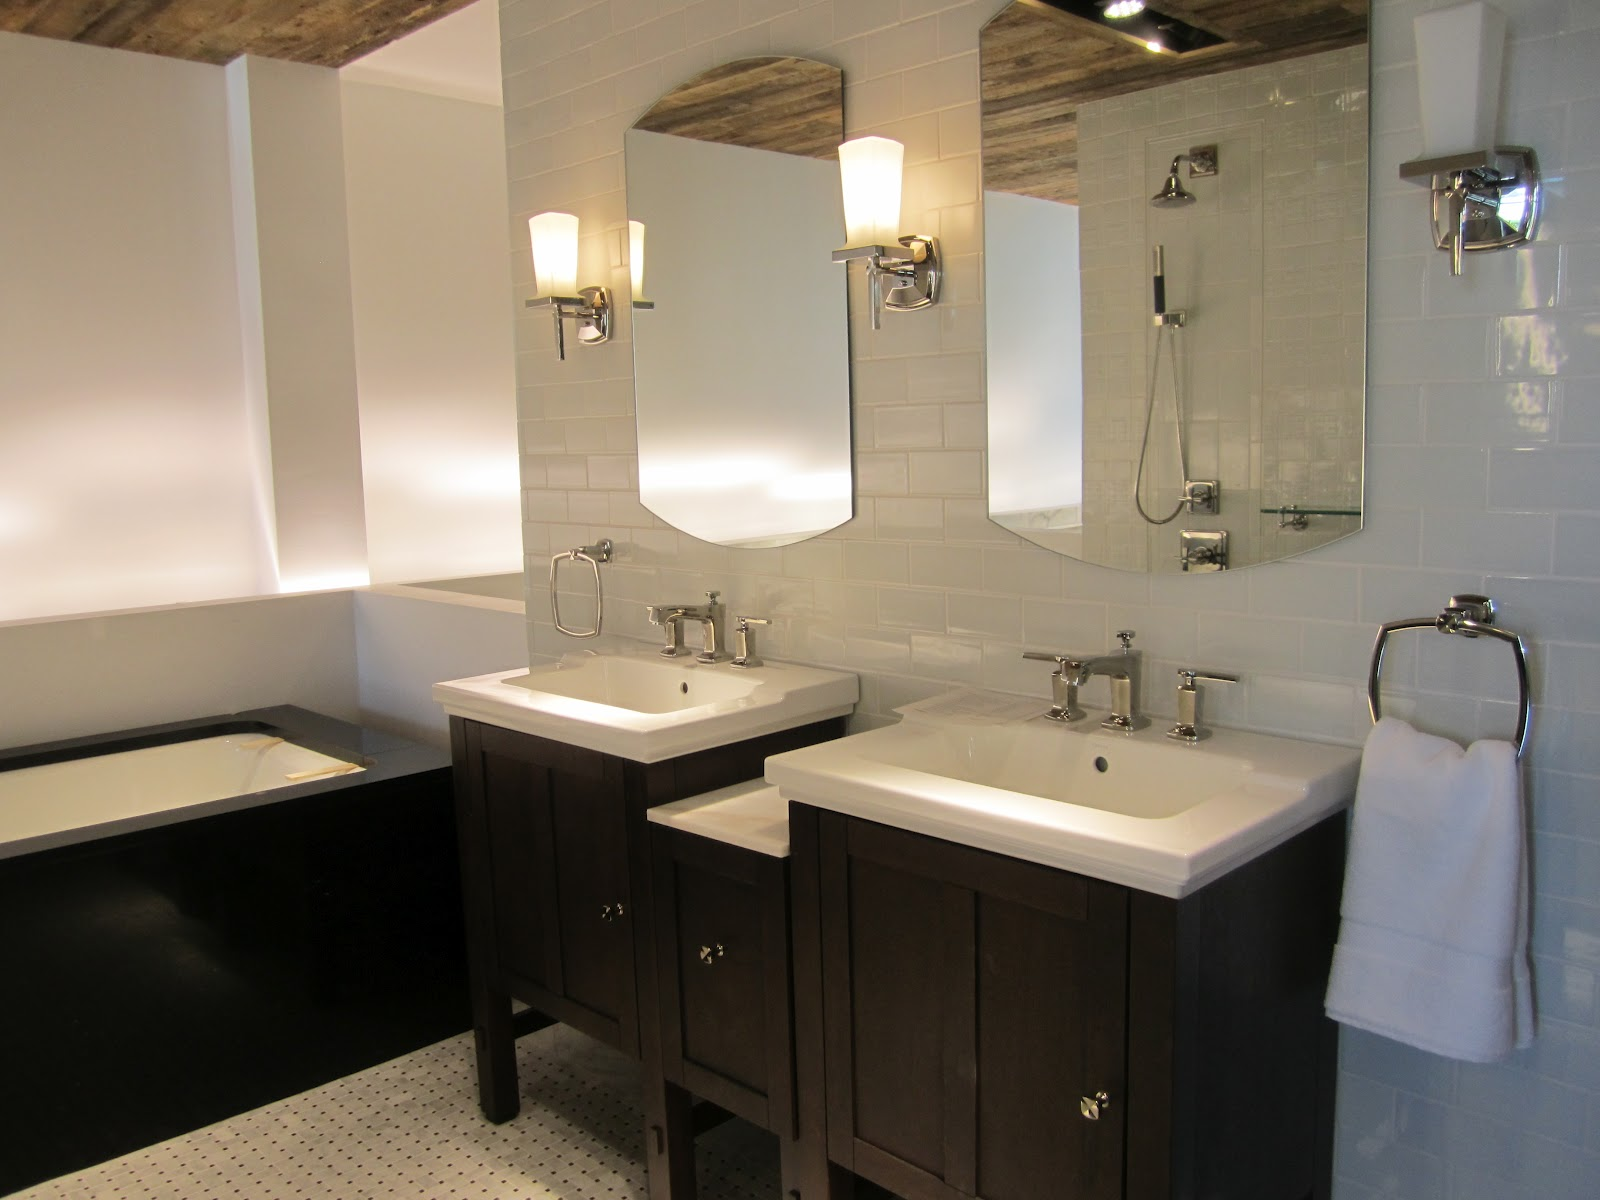 Kohler Showroom : We just got back from the beautiful new Kohler showroom in Edina, MN ...